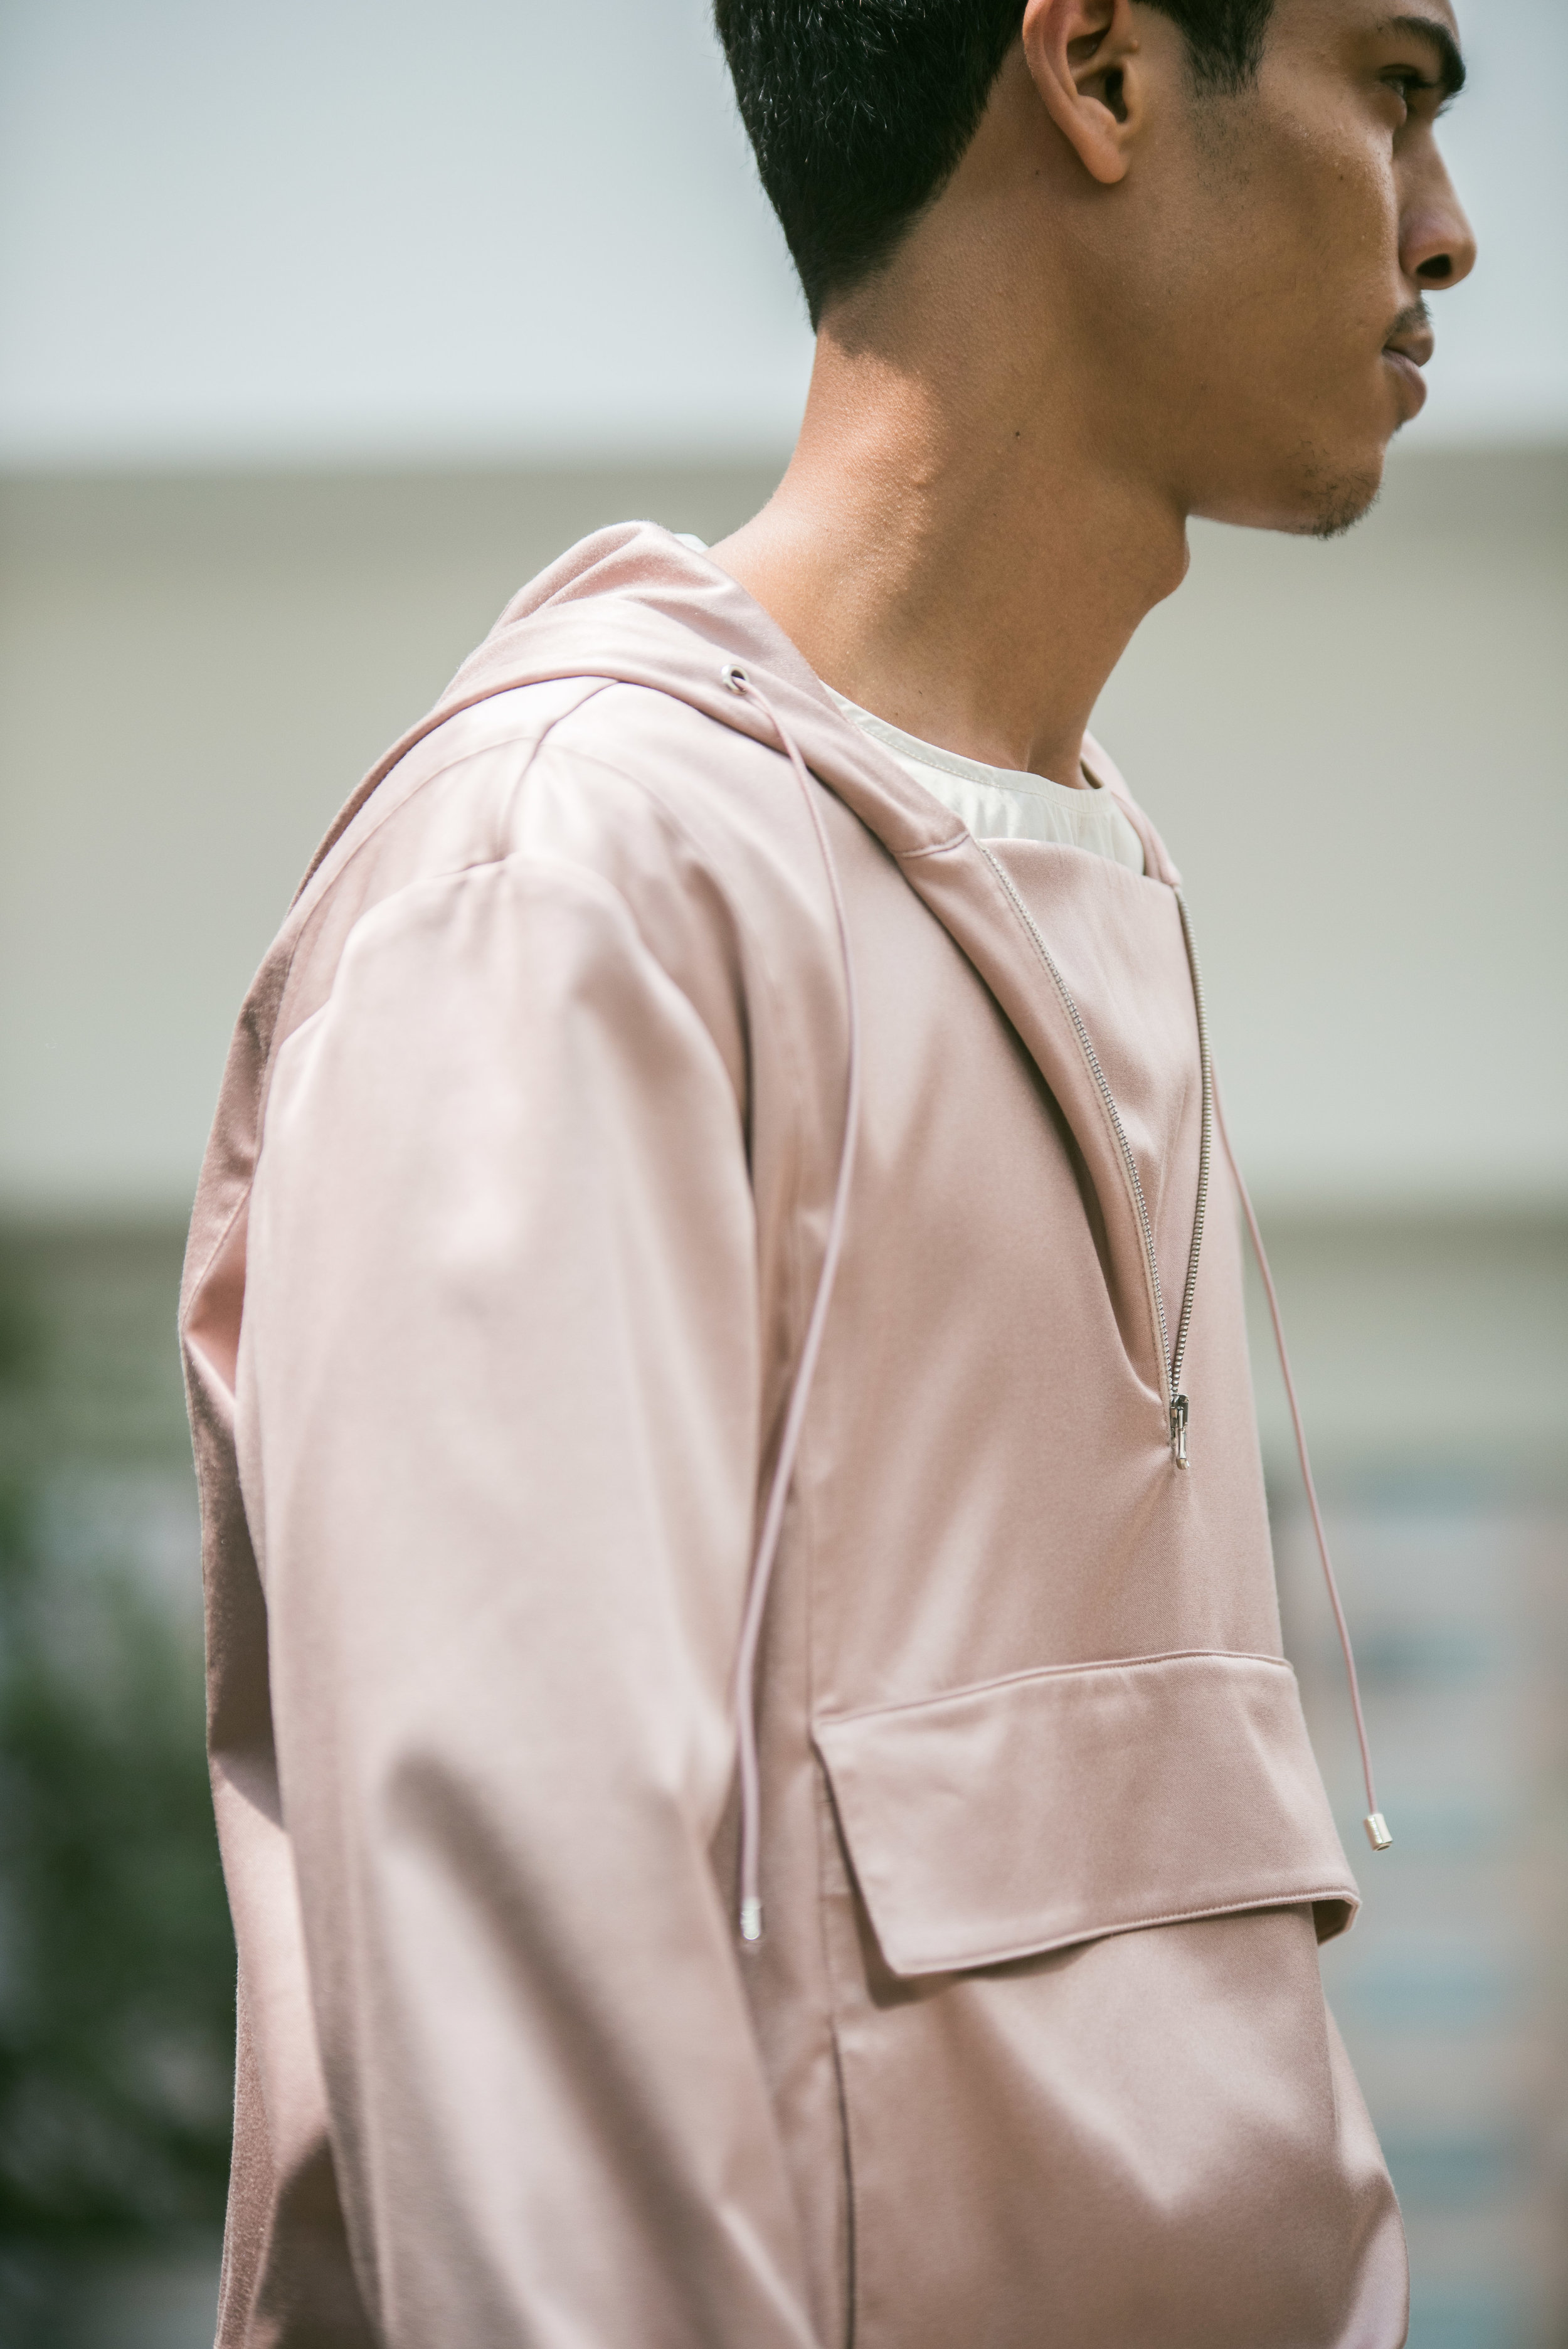 COMPLEX Spoke to stylist Taylor Okata about the Pink Outerwear trend for Spring 2017 and why he chose a rosé colored, long, silk Anorak to open the Deveaux Spring 2017 runway show -